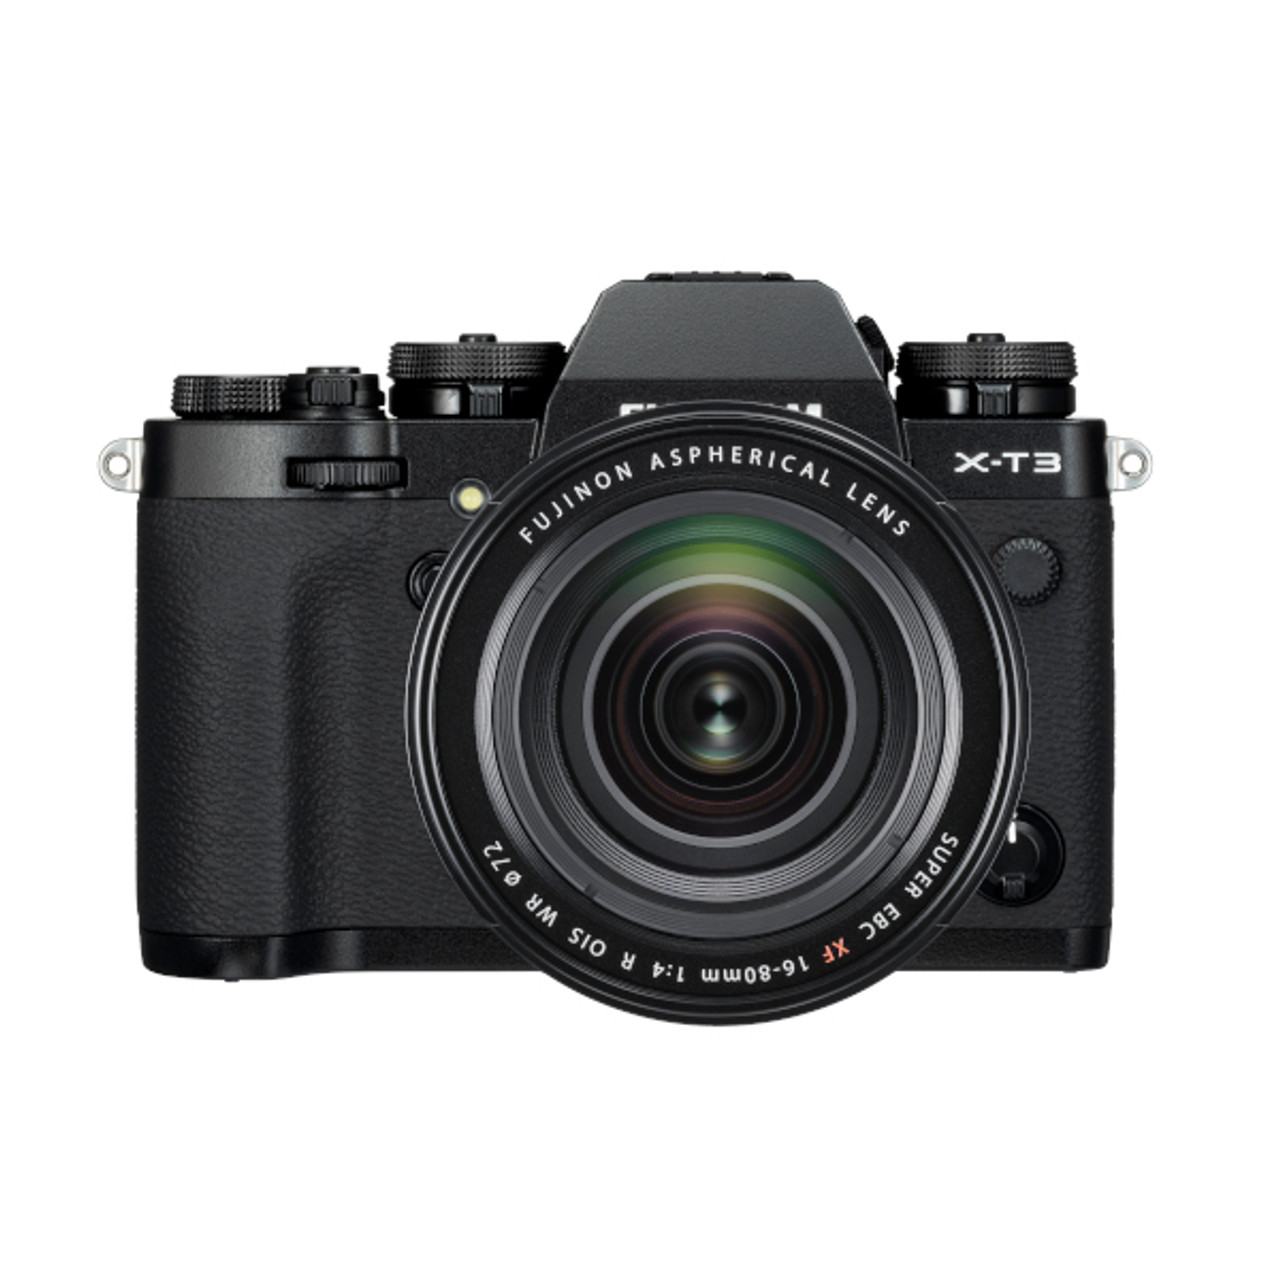 Fujifilm X-T3 Body w/ XF16-80mm F4 R OIS WR Lens Kit (Black)